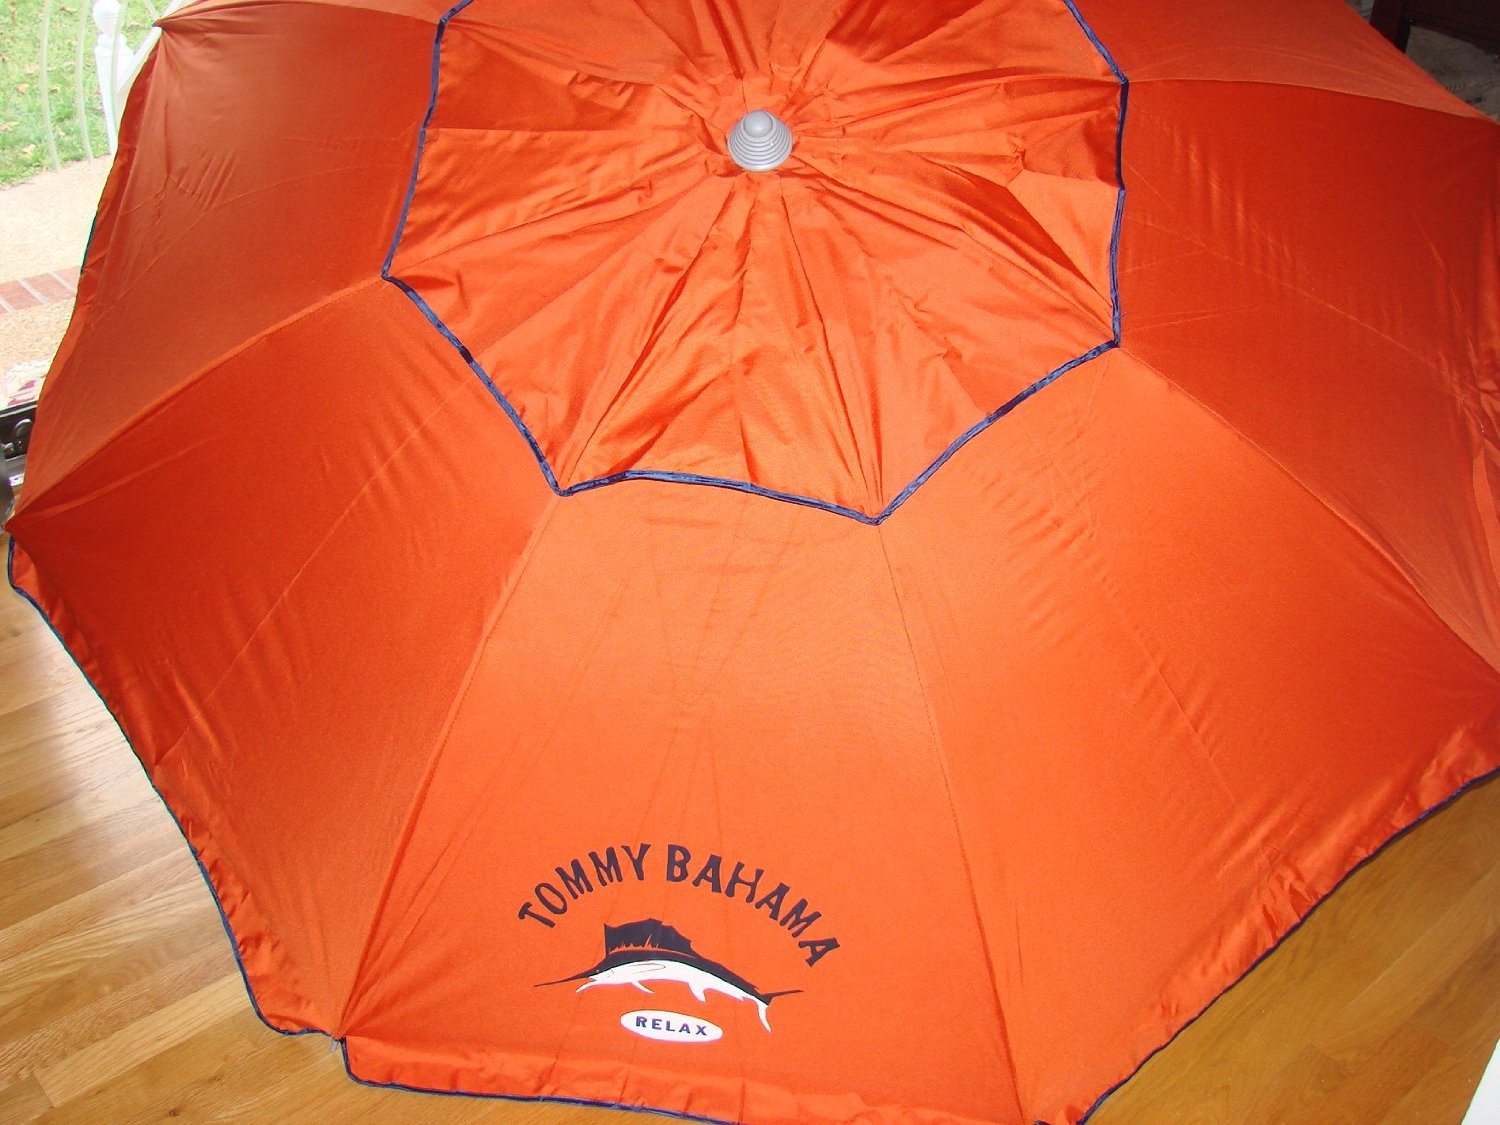 tommy bahama beach chair wedding covers essex prices umbrella review great